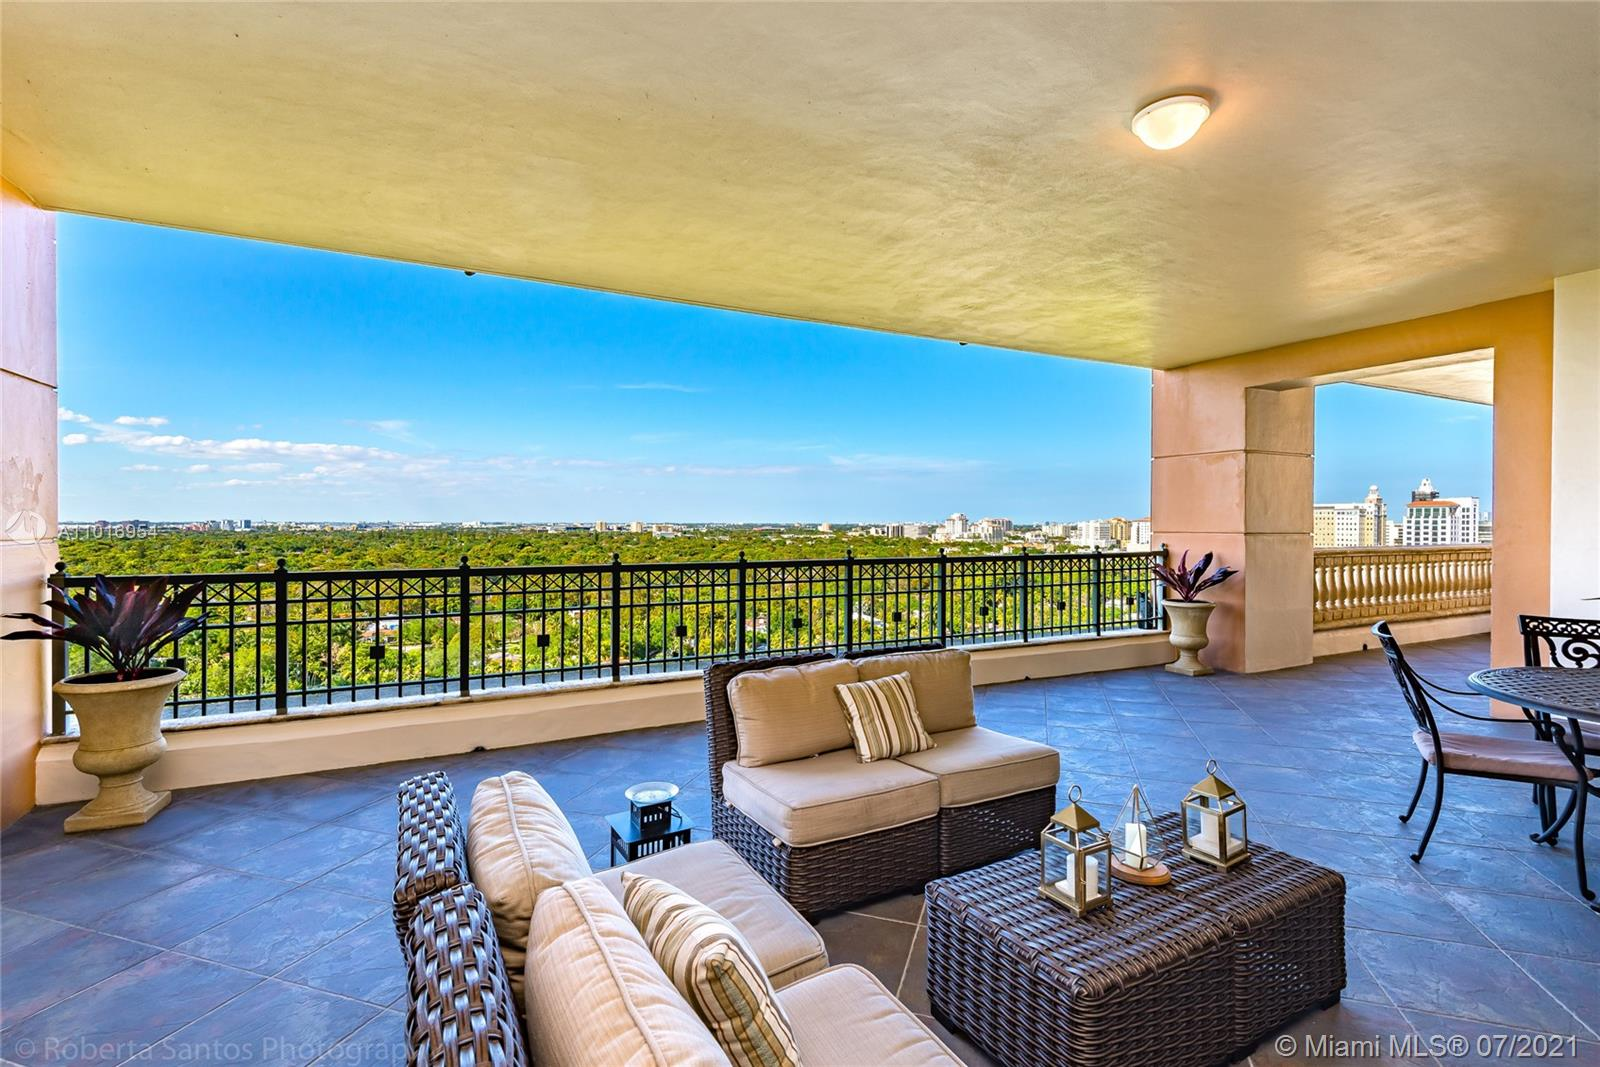 """A unique and rare opportunity to purchase a signature property in the exclusive and sought-after Gables on the Green in Coral Gables, the """"City Beautiful"""". This one-of-a-kind Penthouse has a privileged location with soaring views directly over the Granada Golf Course and extending to the stunning Miami Skyline. This very private luxury Highrise has only 17 stories and its enviable location is minutes away from fine dining, shopping, and beautiful Miracle Mile. This gorgeous home has 4 bedrooms and 4 and 1/2 bathrooms with a terrific floorplan of 3,513 sq ft of interior living space with high ceilings and limestone floors throughout. The generous main living area opens to a magnificent covered outdoor terrace ideal for entertaining with views that will leave you breathless."""